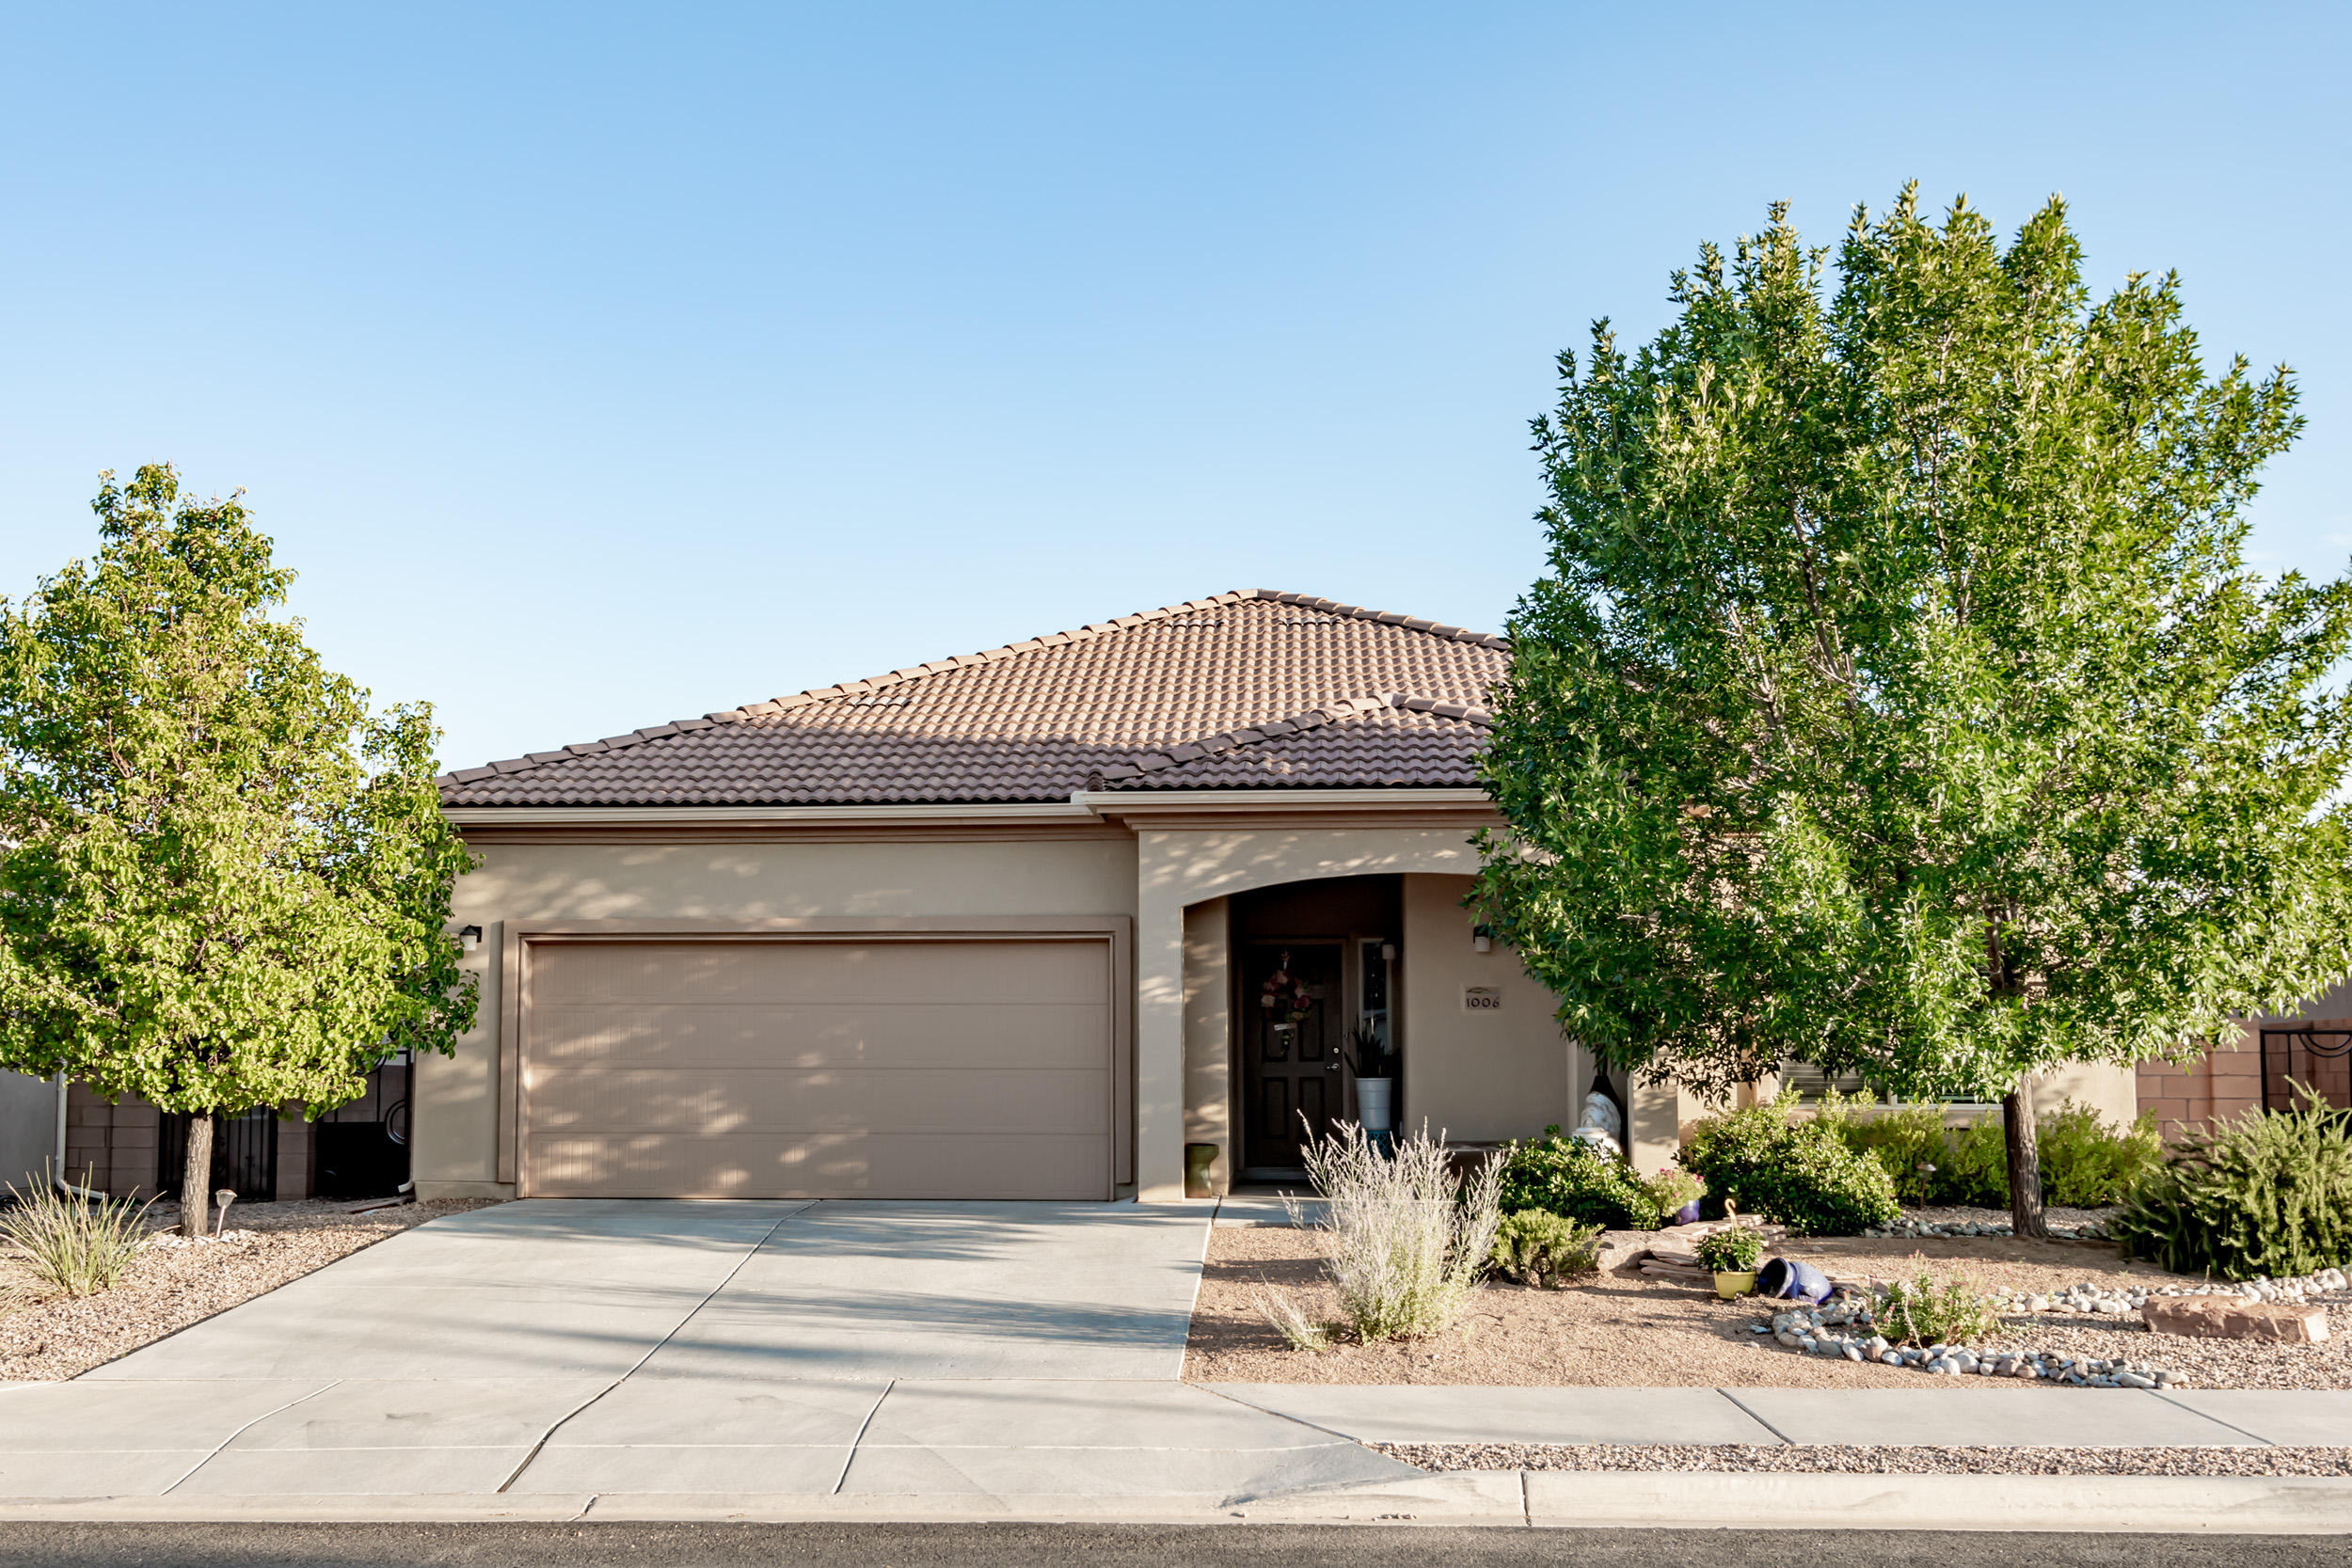 Nicely appointed 3BR plus an office/hobby room in NM premier gated 55+ active adult community by Del Webb located along the Rio Grande Bosque Preserve. Entire home is easy to maintain w tile flooring in all rooms except master BR. Open & bright floor plan w large kitchen incl. an upgraded island w a granite countertop & added seating. Lots of personality & charm has been added to this home incl. decorative shelving & accent lighting features. Granite counters & upgraded cabinetry in the laundry room. Fans in every room along with AC Refrigerated cooling keeps you cool in summer. Landscaped backyard w accent walls & added seating. Enjoy the indoor/outdoor pools, fitness club & outdoor game areas & walking paths for only $150/month. Min to shopping, eating, medical facilities, golf course